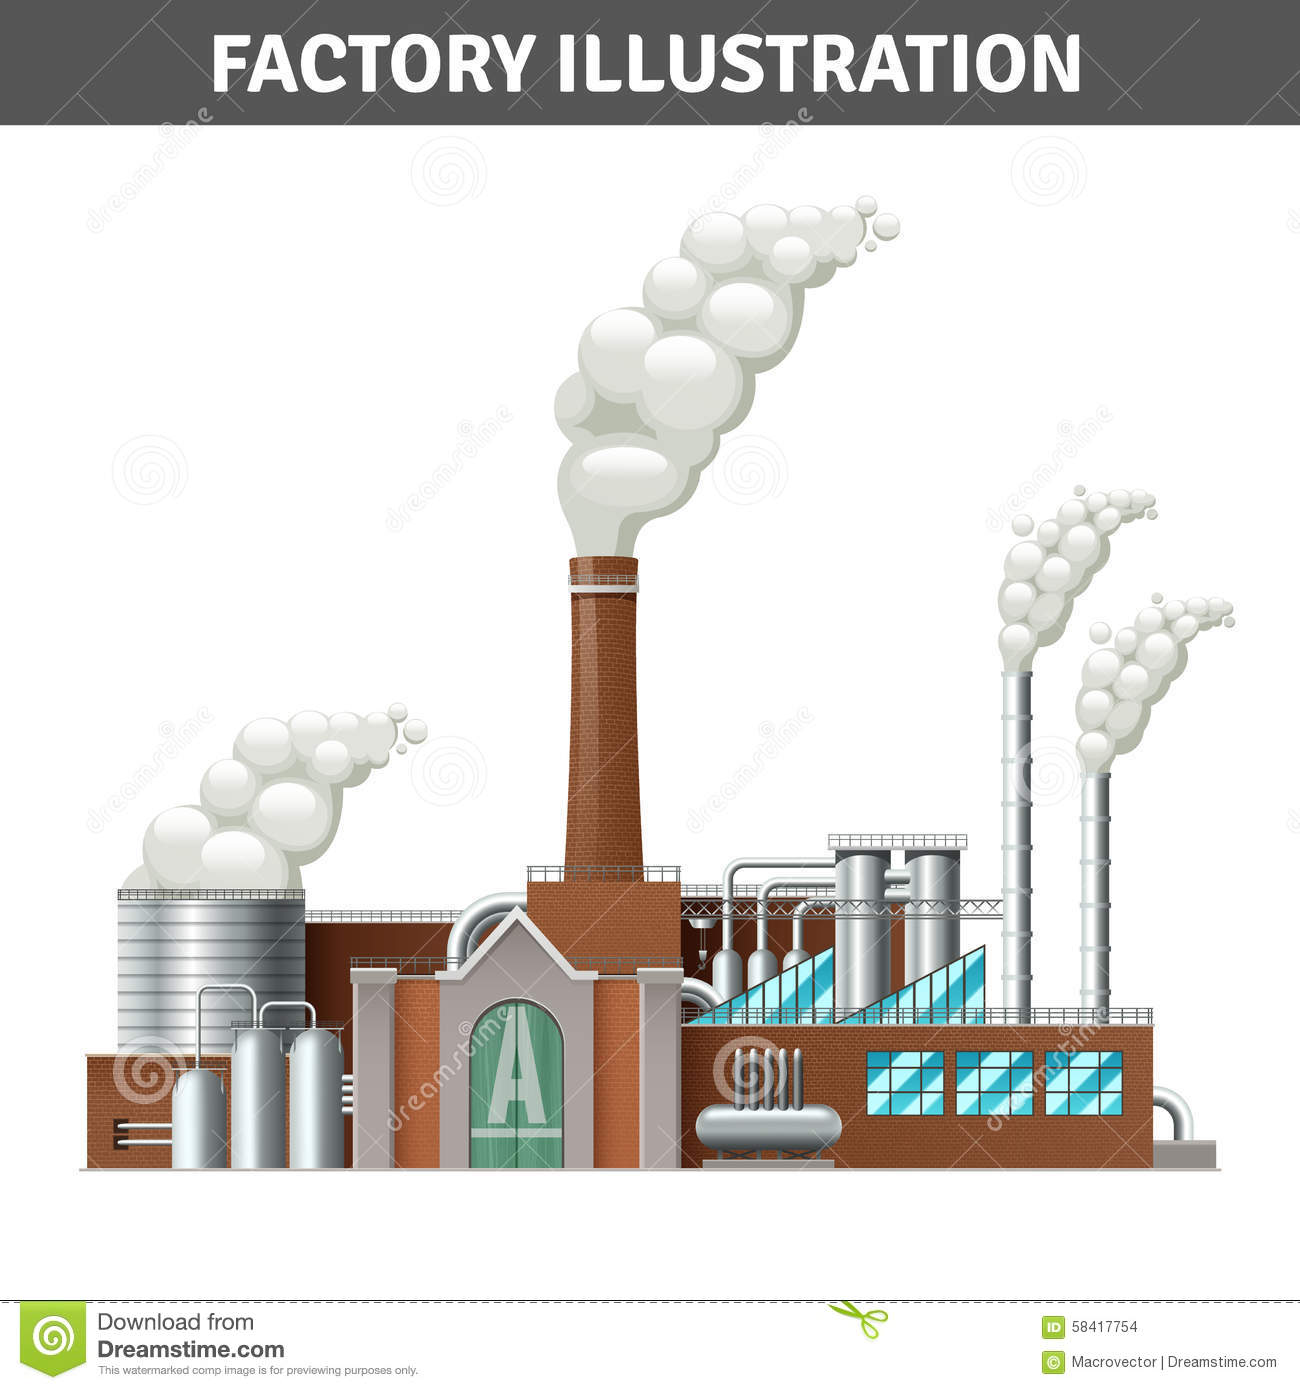 Realistic Factory Illustration Stock Vector - Image: 58417754